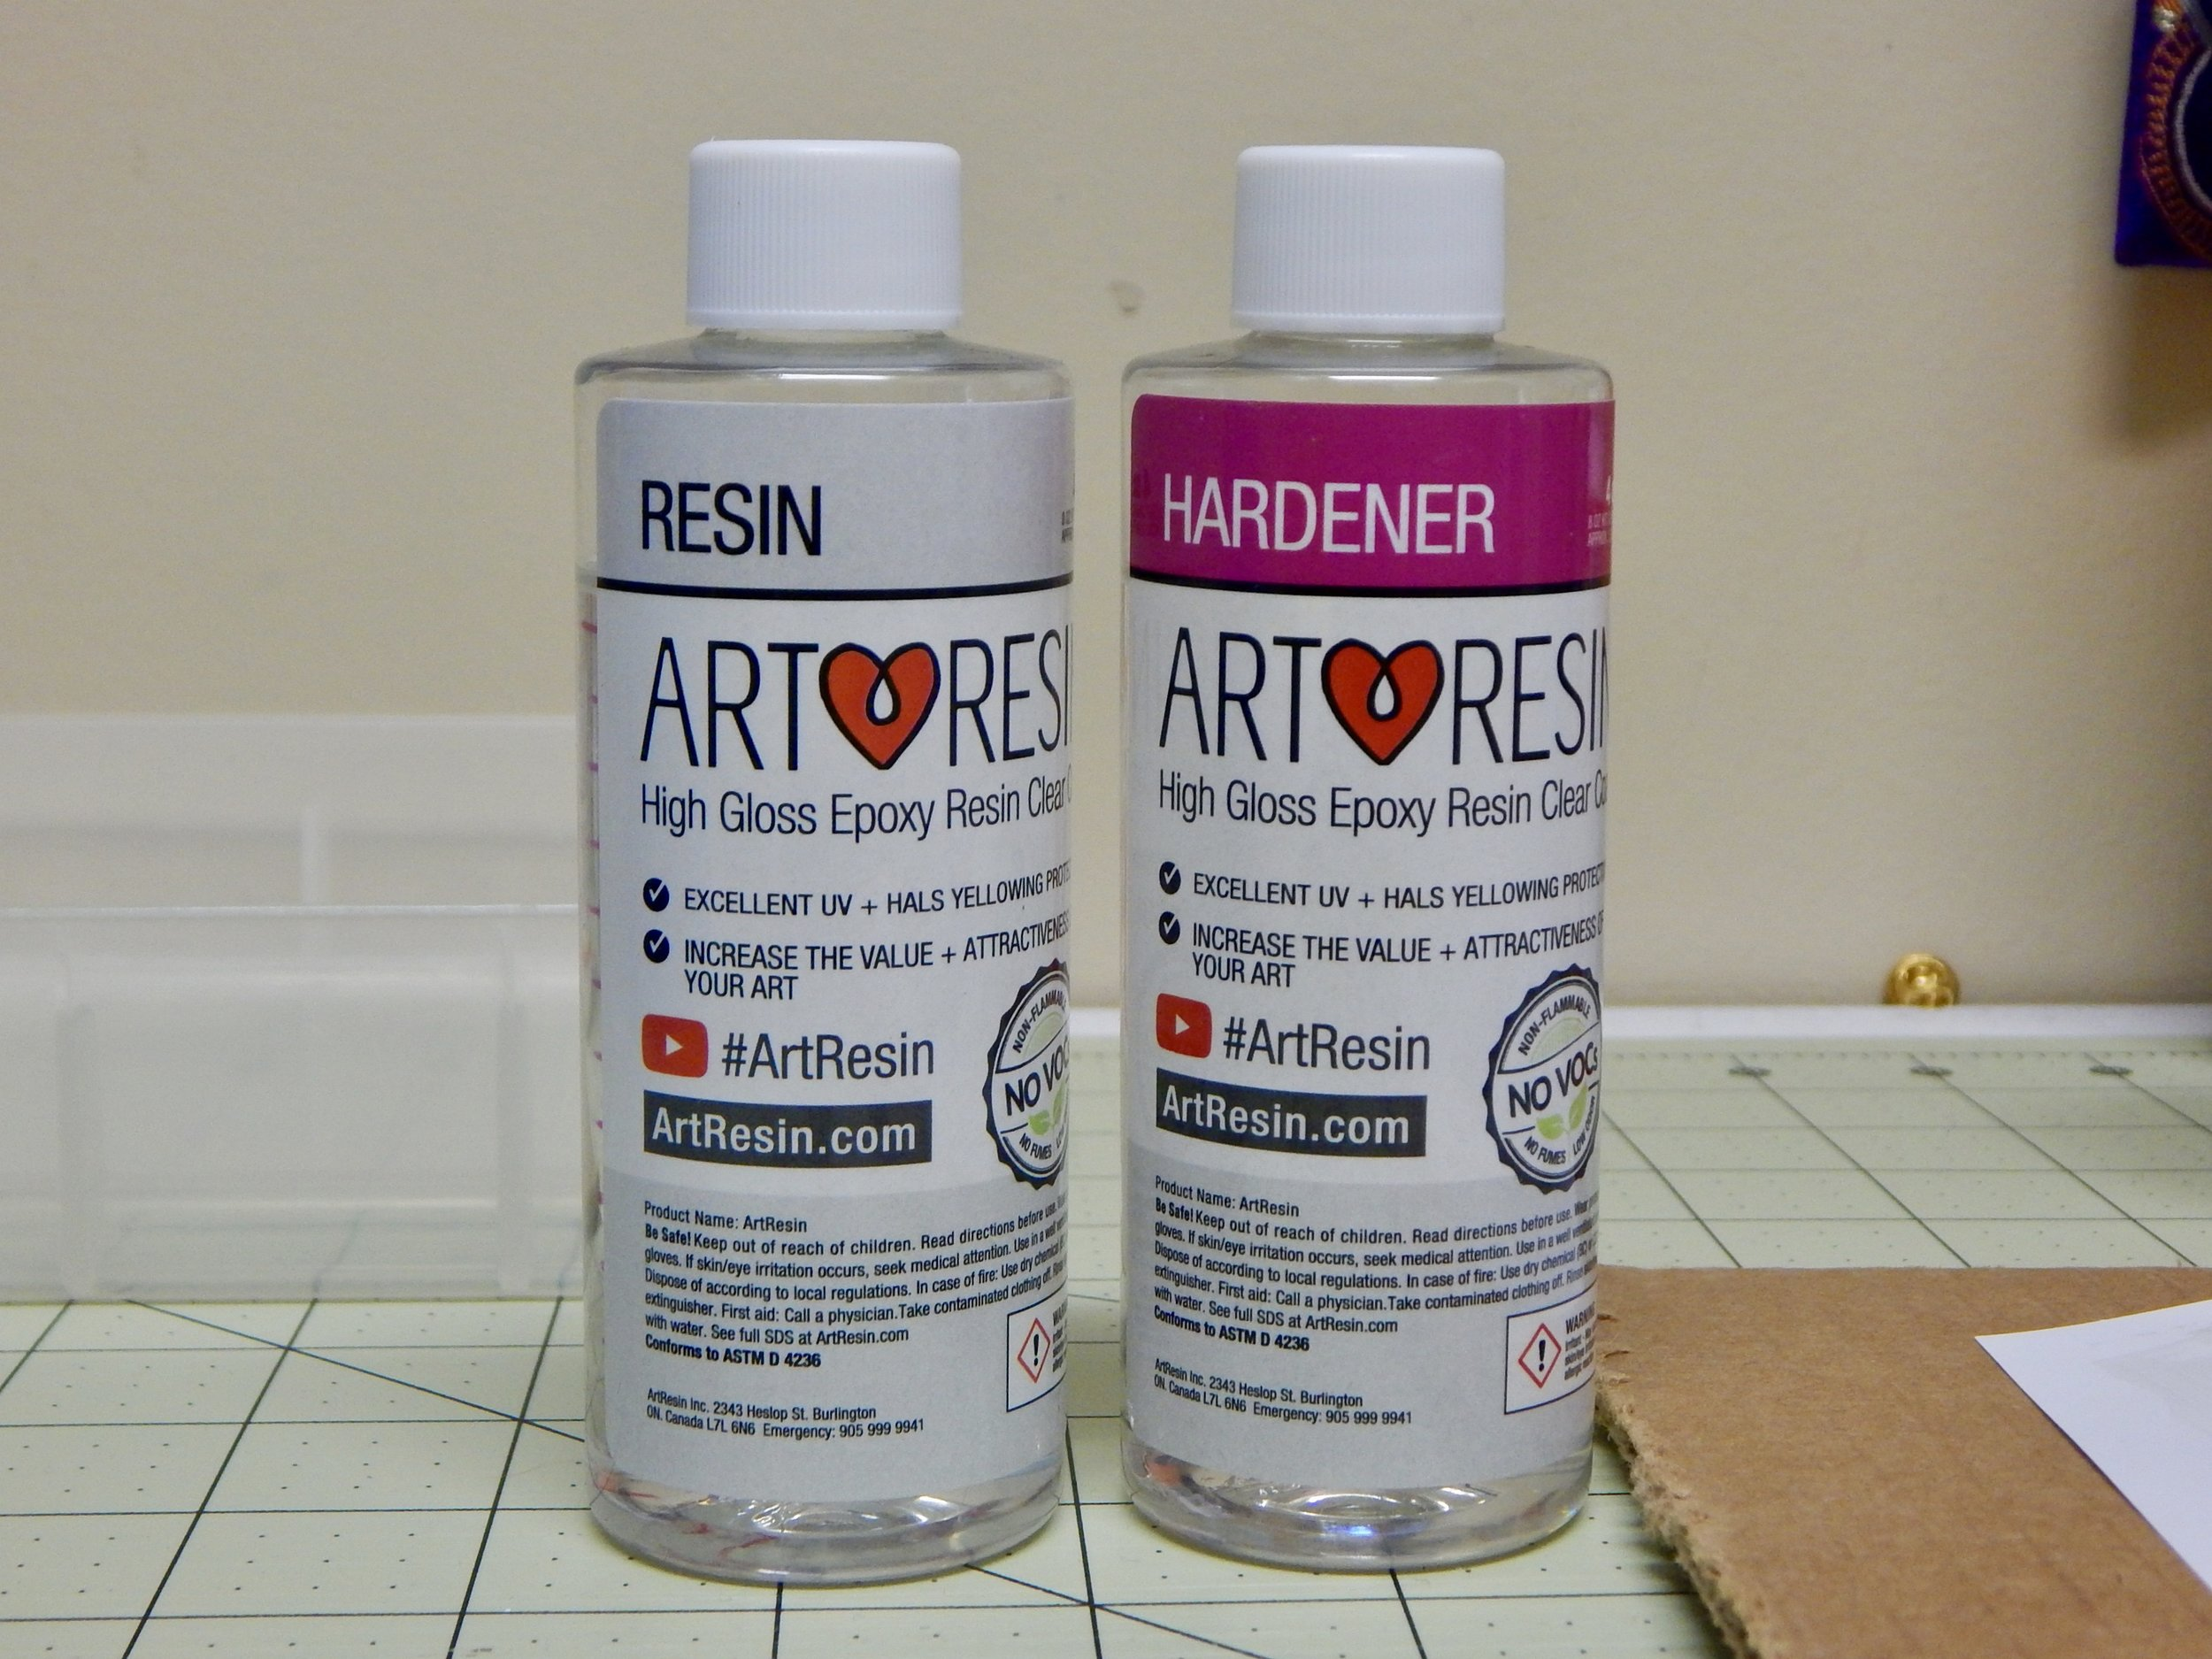 I got Art Resin from Amazon. Ice Resin is also a good alternative.